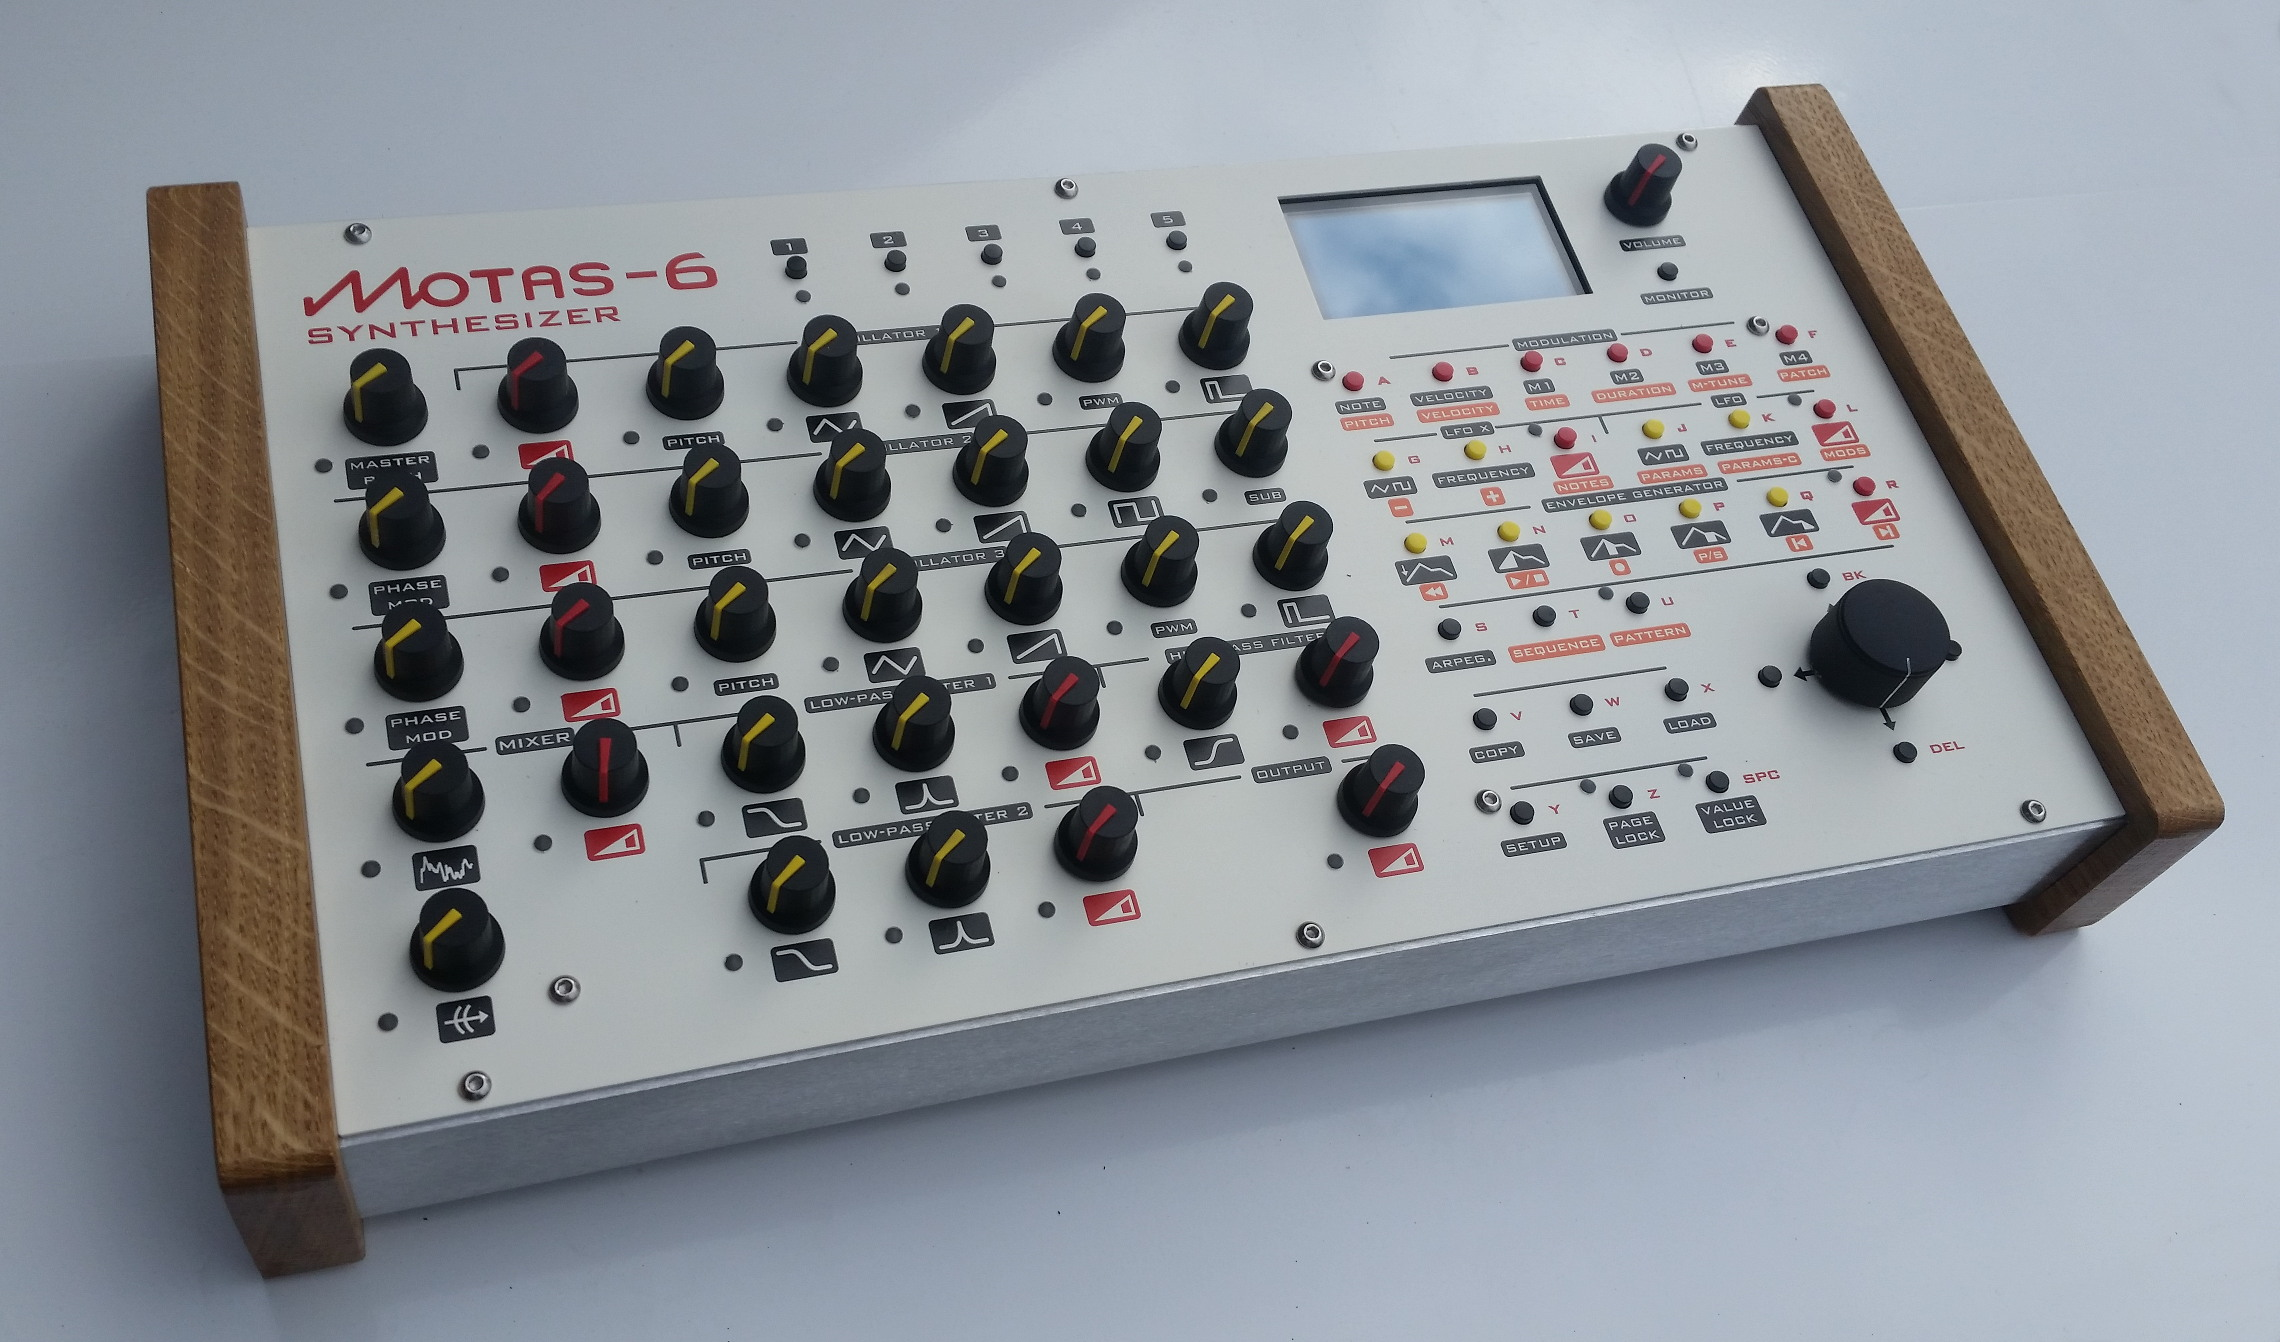 Motas-6 image in white painted finish